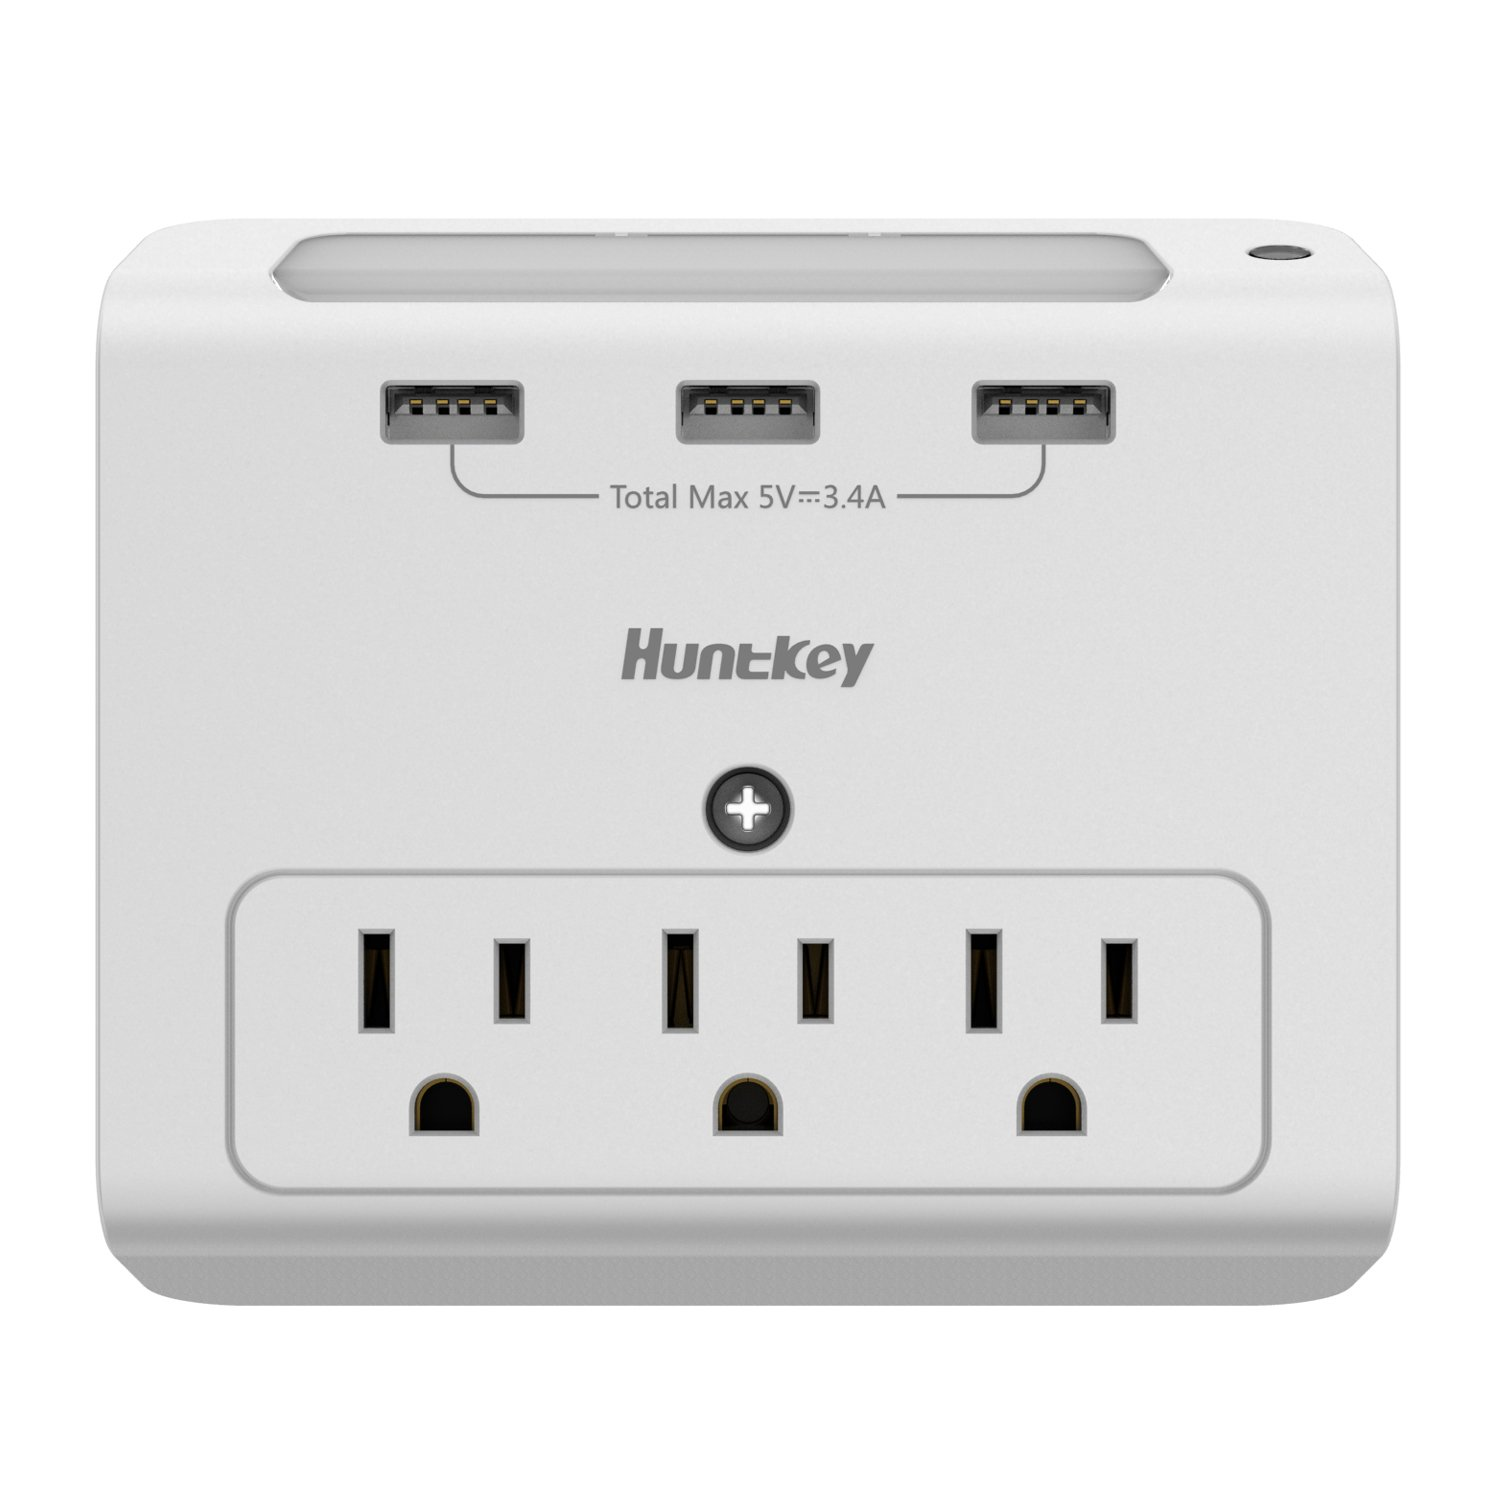 Huntkey Auto Night Light Wall Mount Outlets with 3 AC Plugs and 3 USB Ports Shared 3.4A SMD307-02